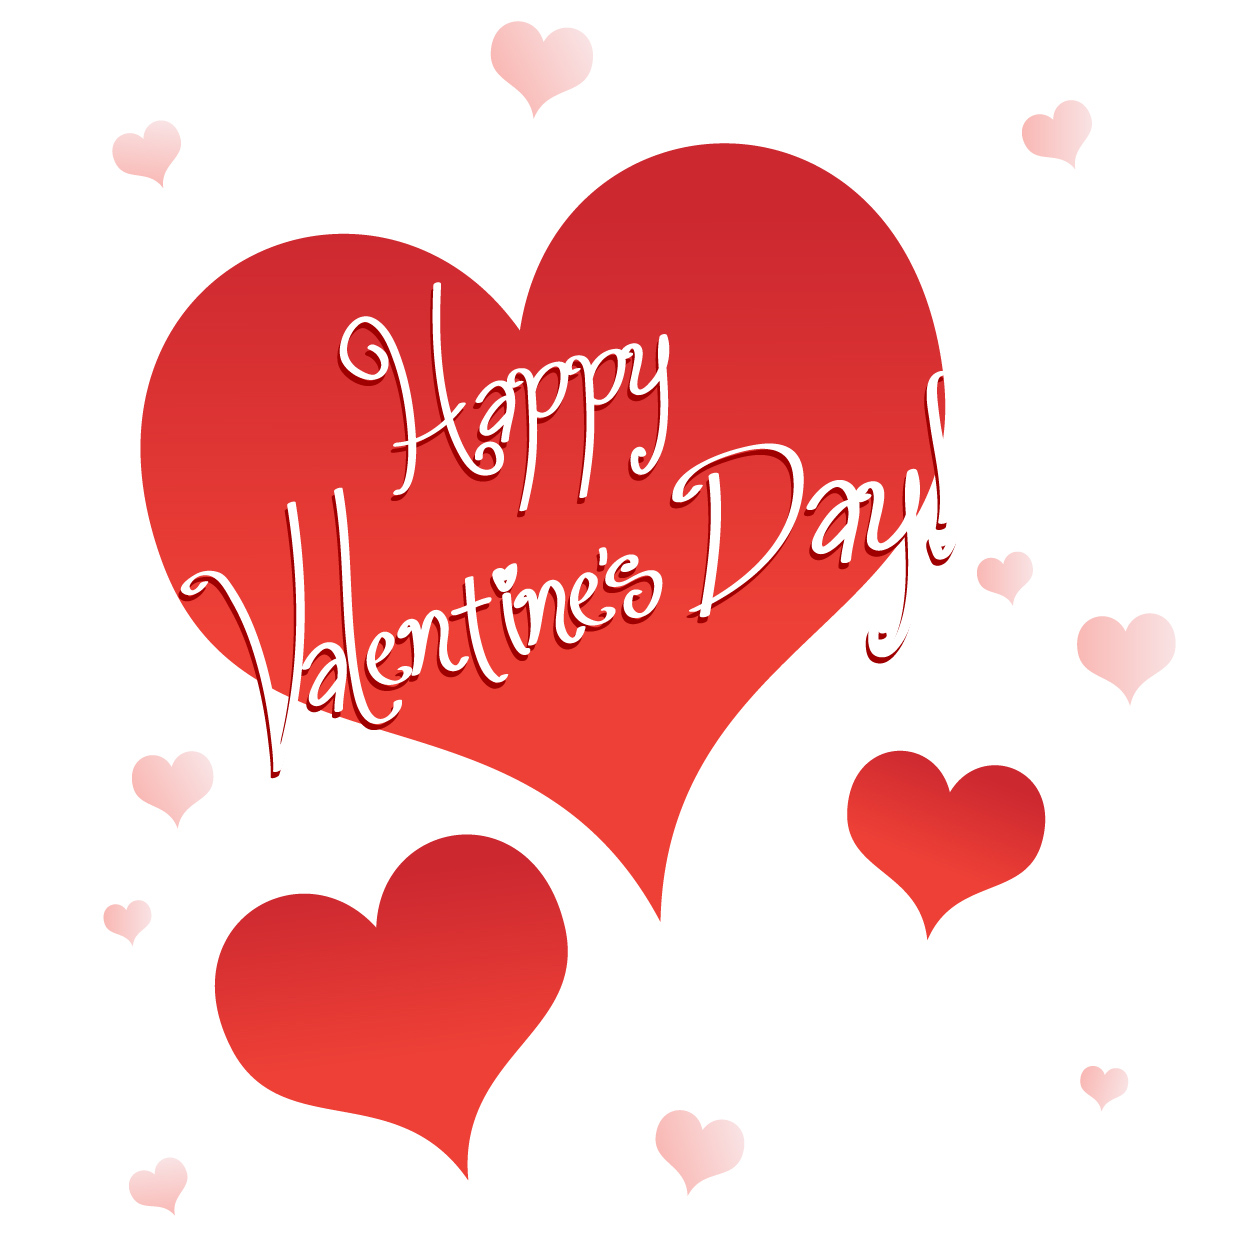 February valentines day clip art free cl-February valentines day clip art free clip art free clip art-2